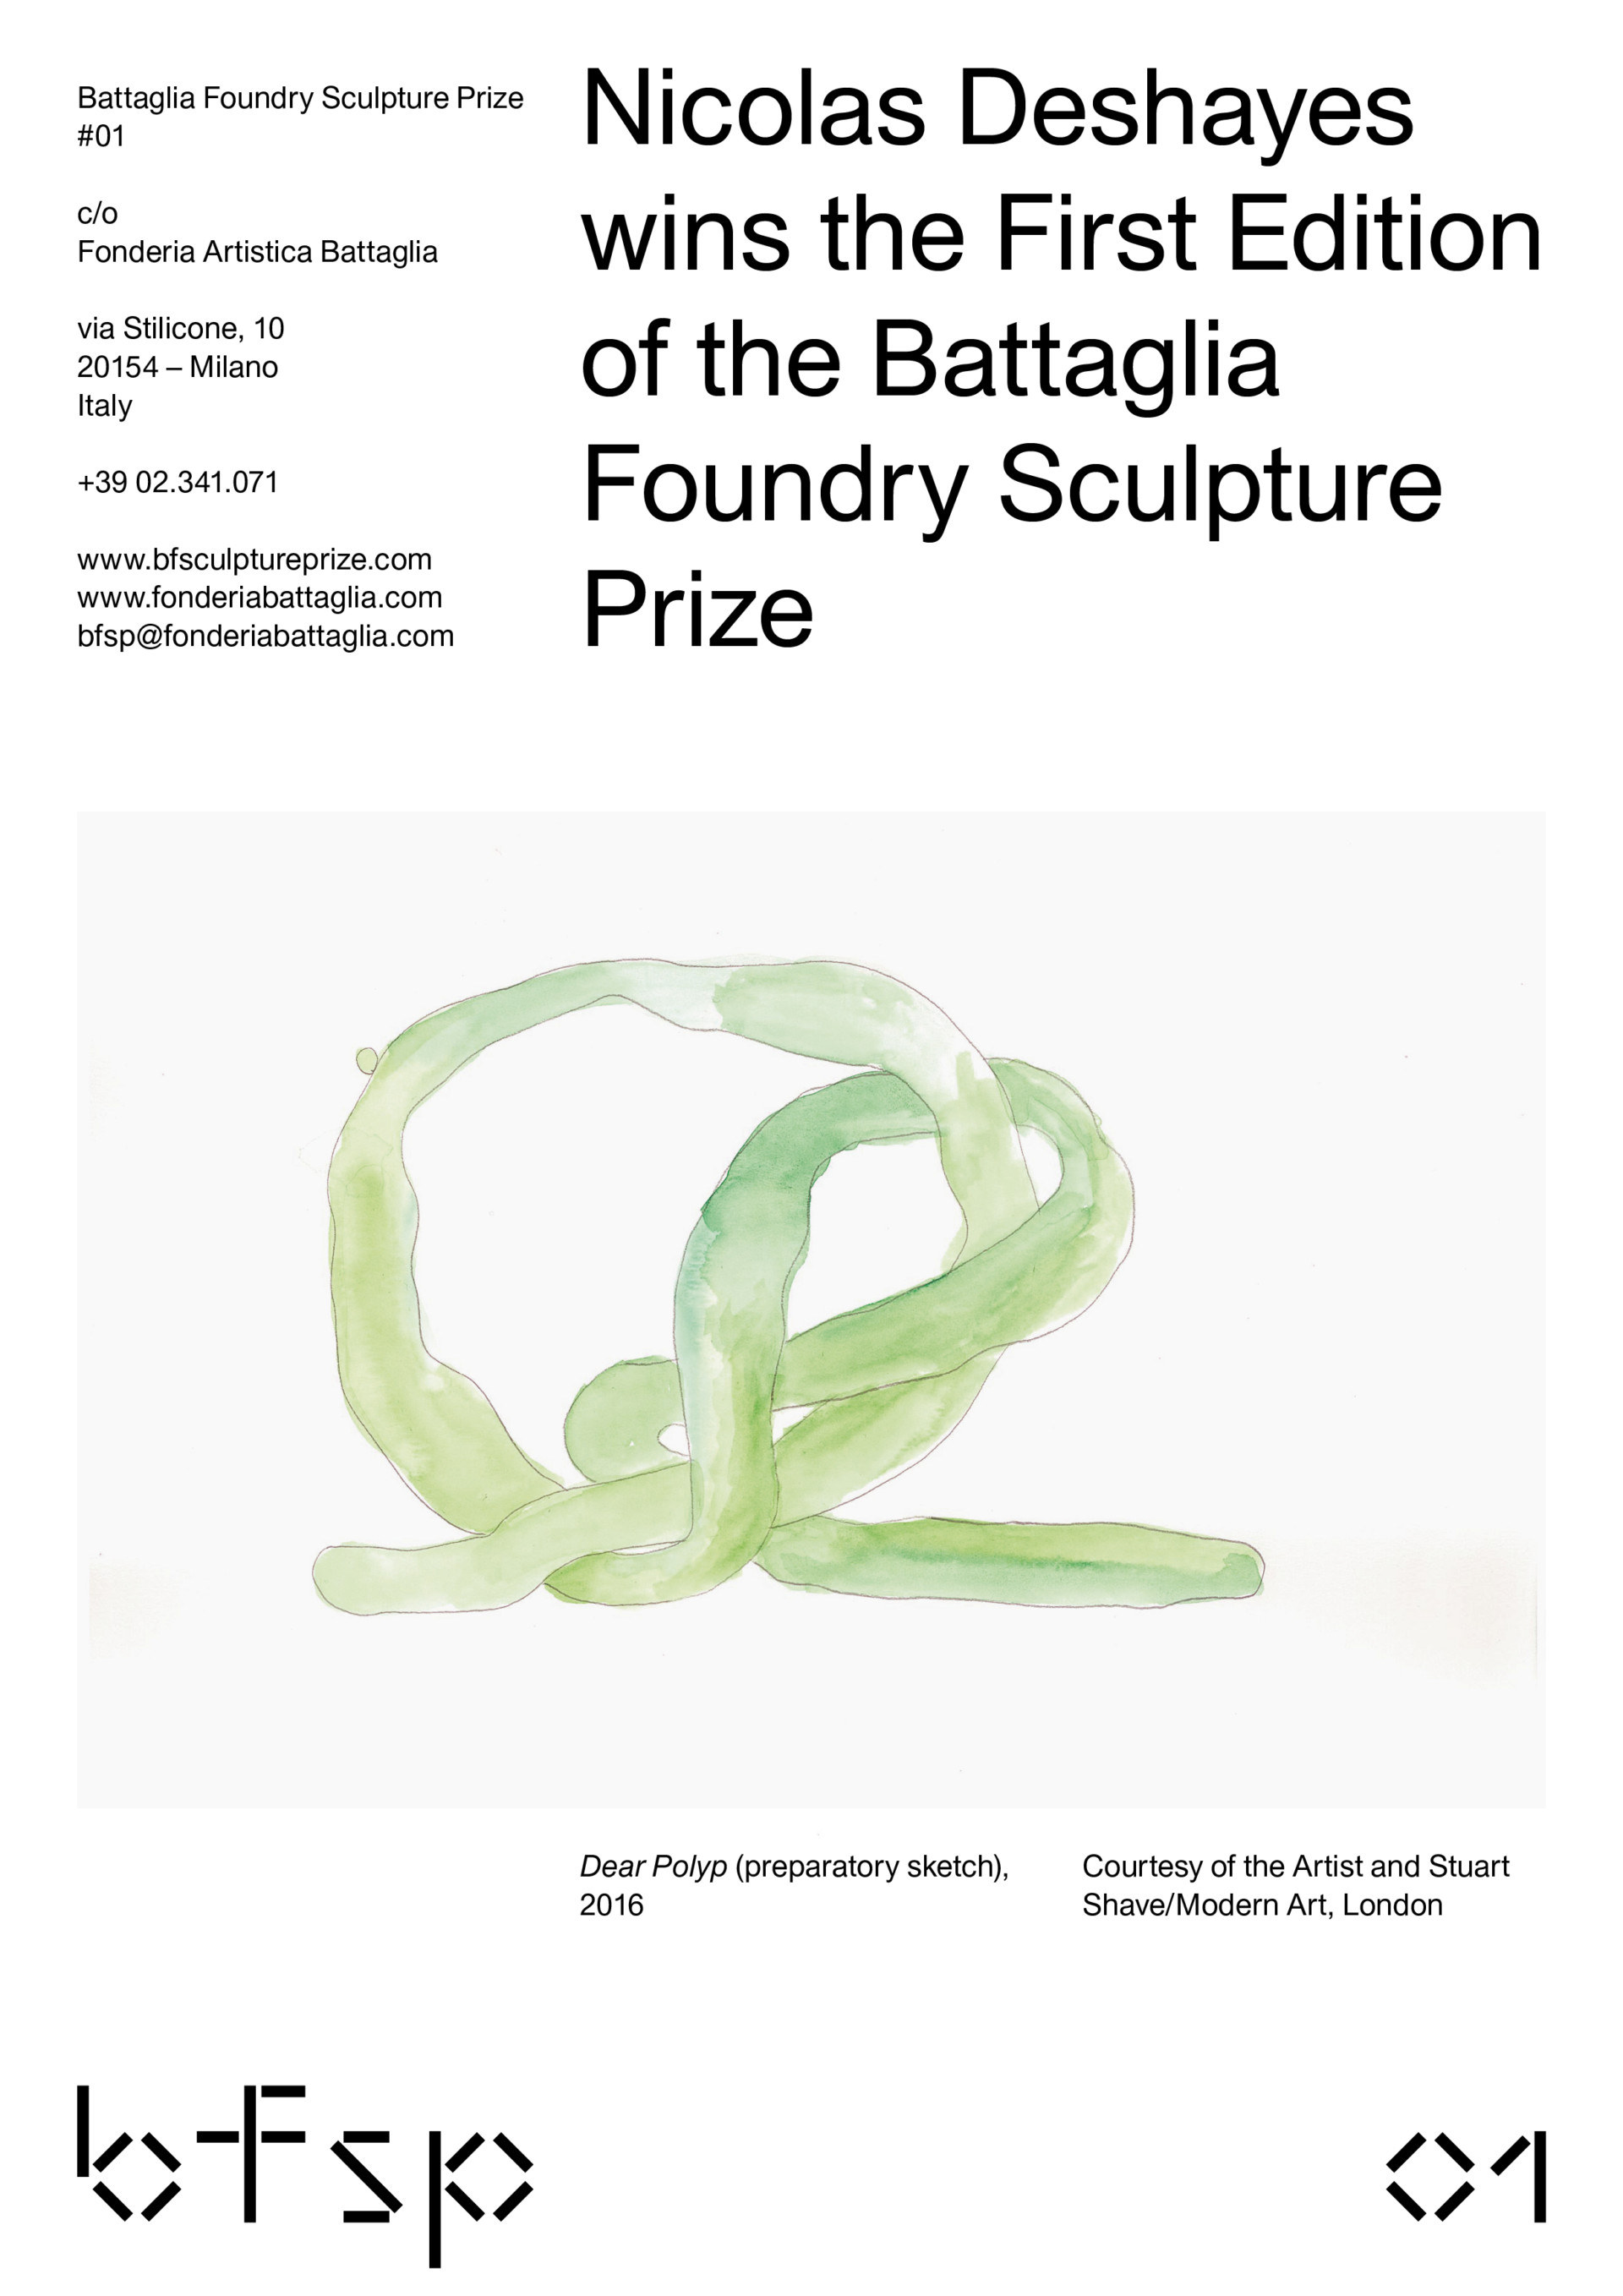 MOUSSE AGENCY BATTAGLIA FOUNDRY SCULPTURE PRIZE — 2016